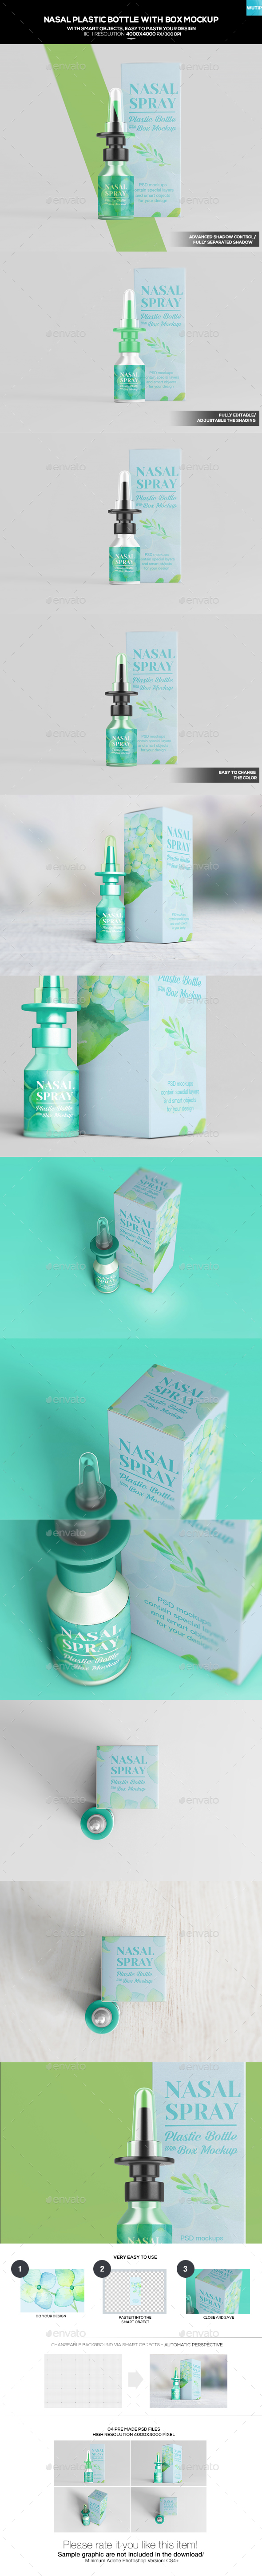 Nasal Plastic Bottle With Box Mockup - Miscellaneous Packaging